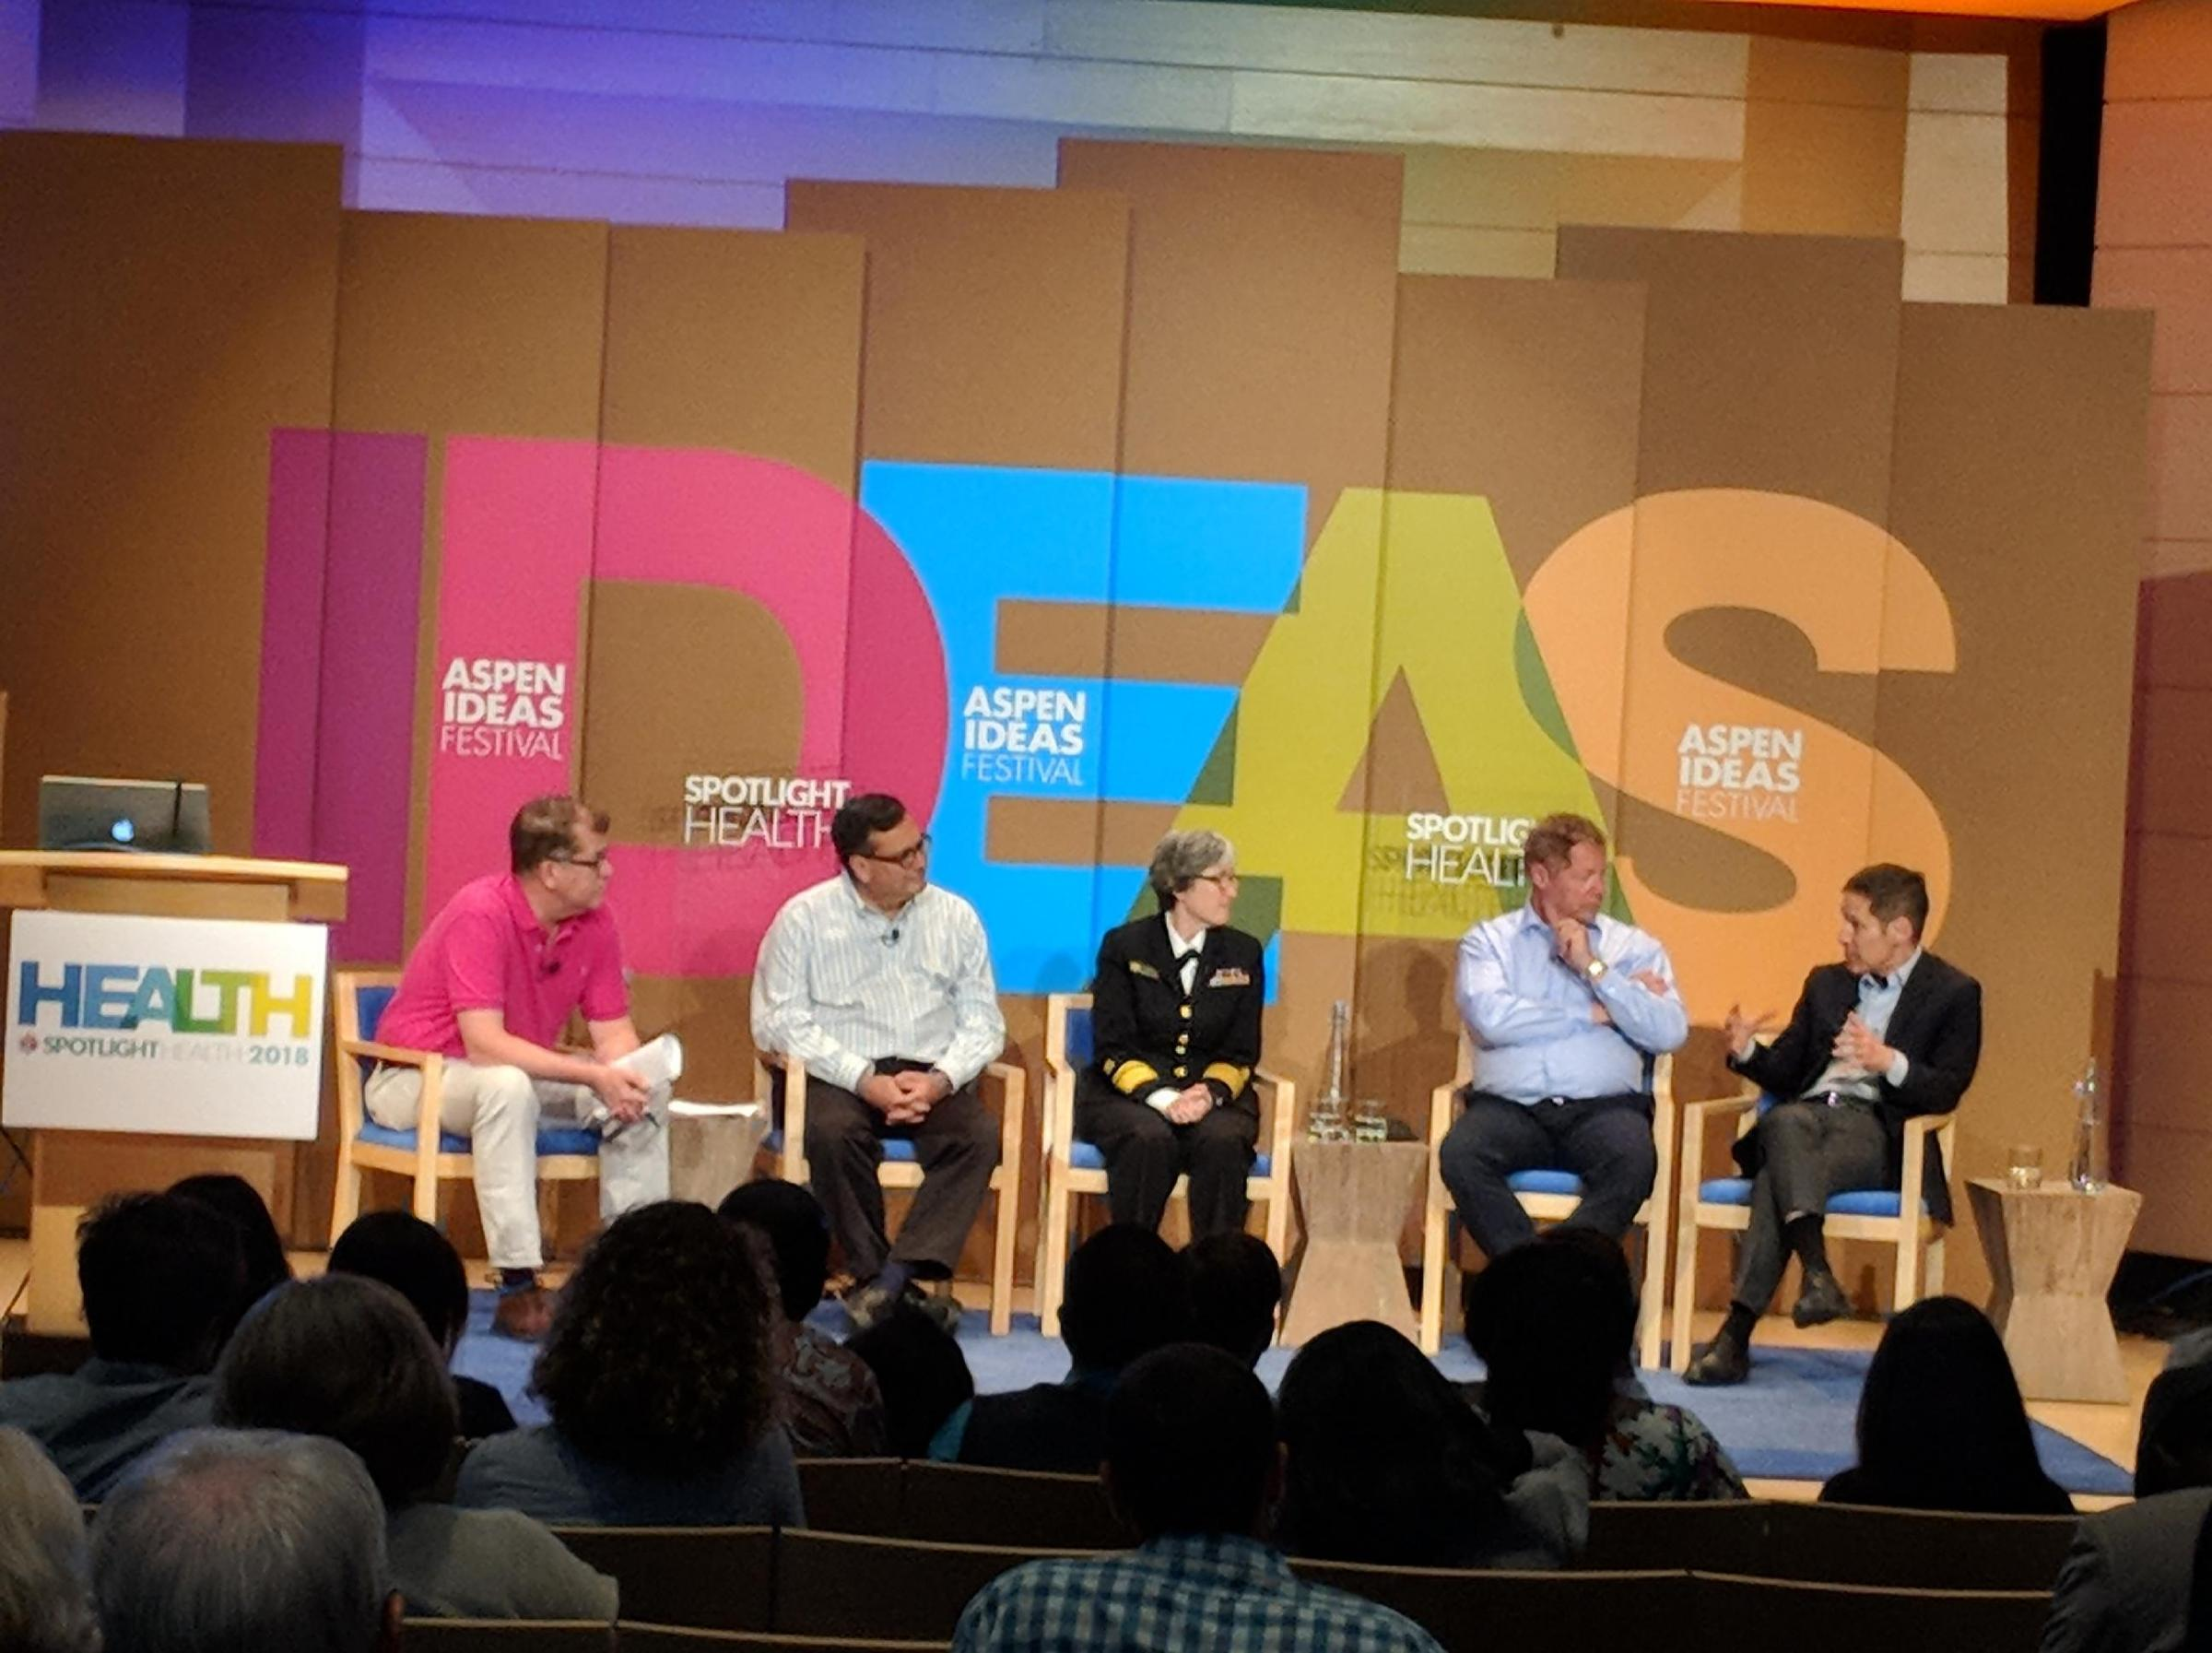 Aspen Ideas Festival 2018: Who Is Prepared For The Next Epidemic